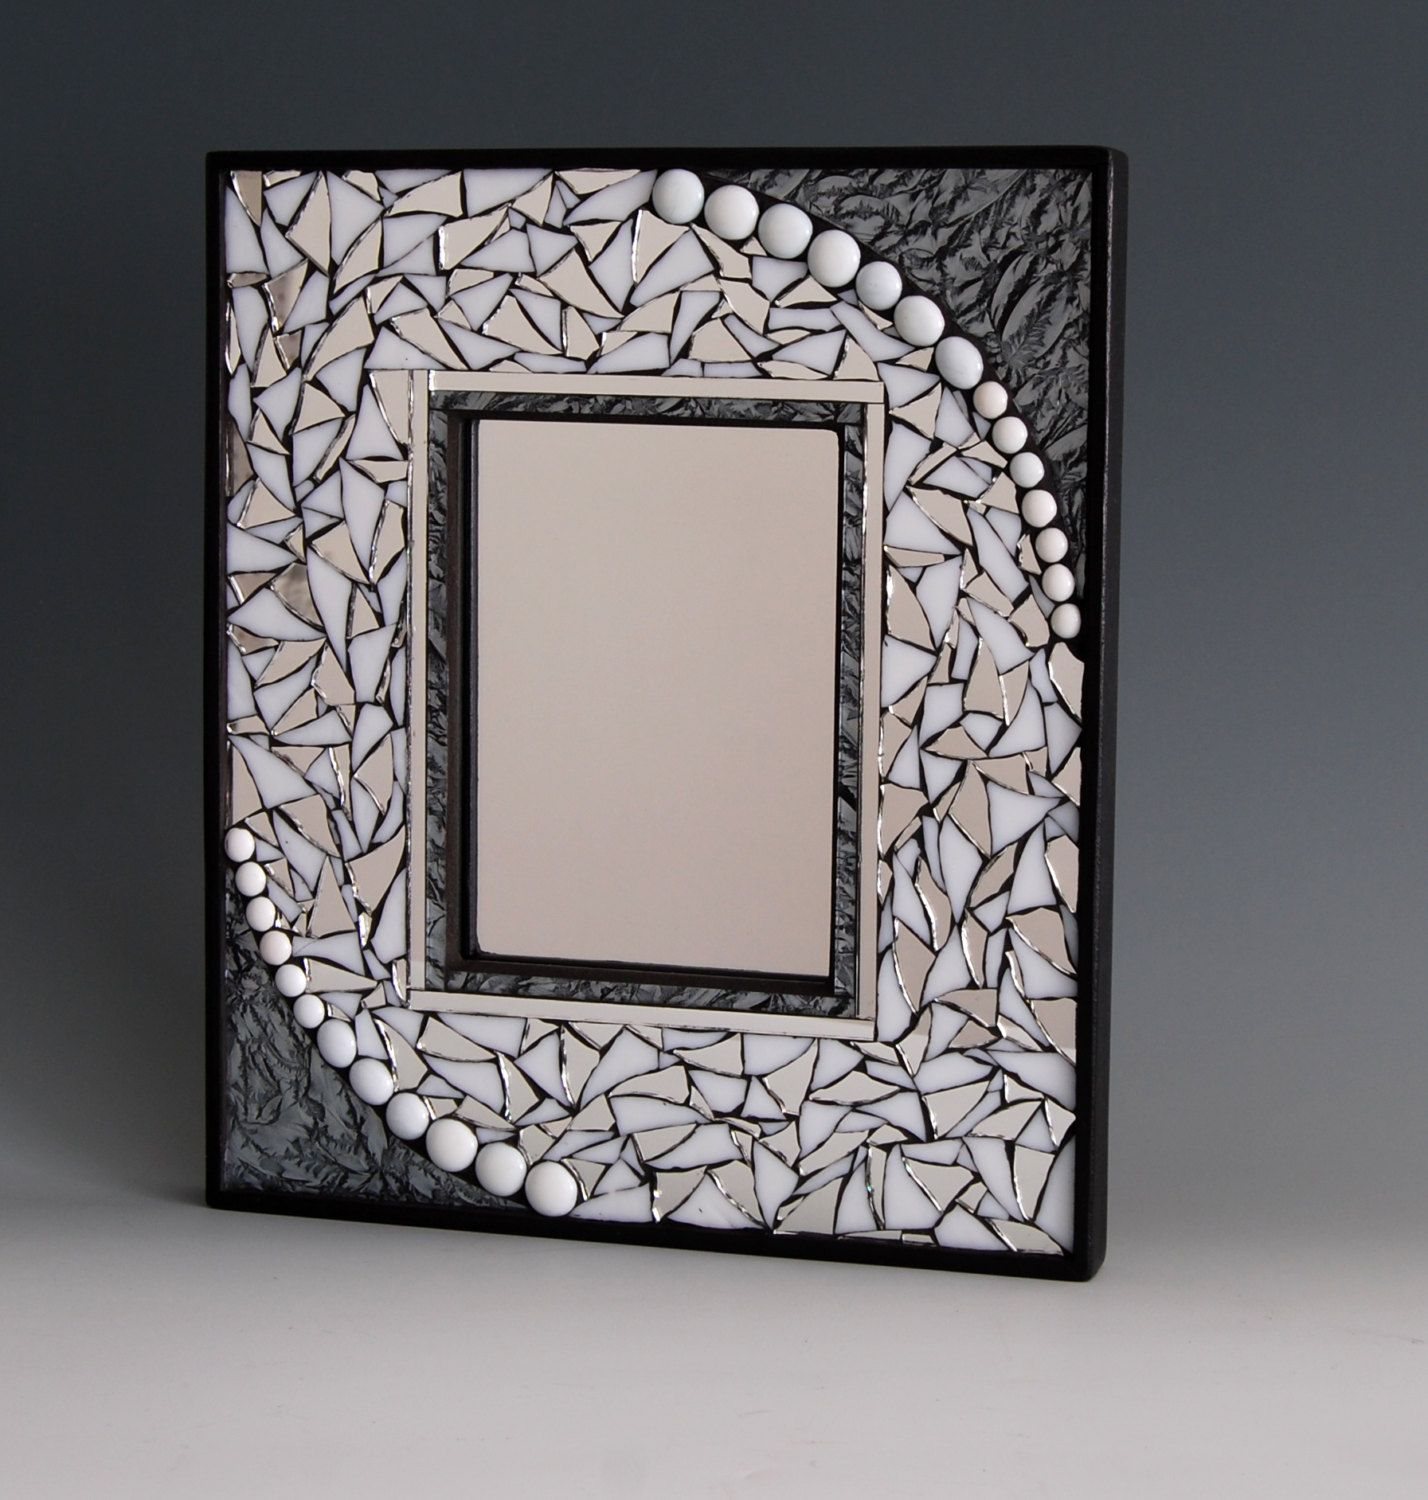 Spiegel Mosaik Mosaic Mirror With Stained Glass, Mirror Pieces, And